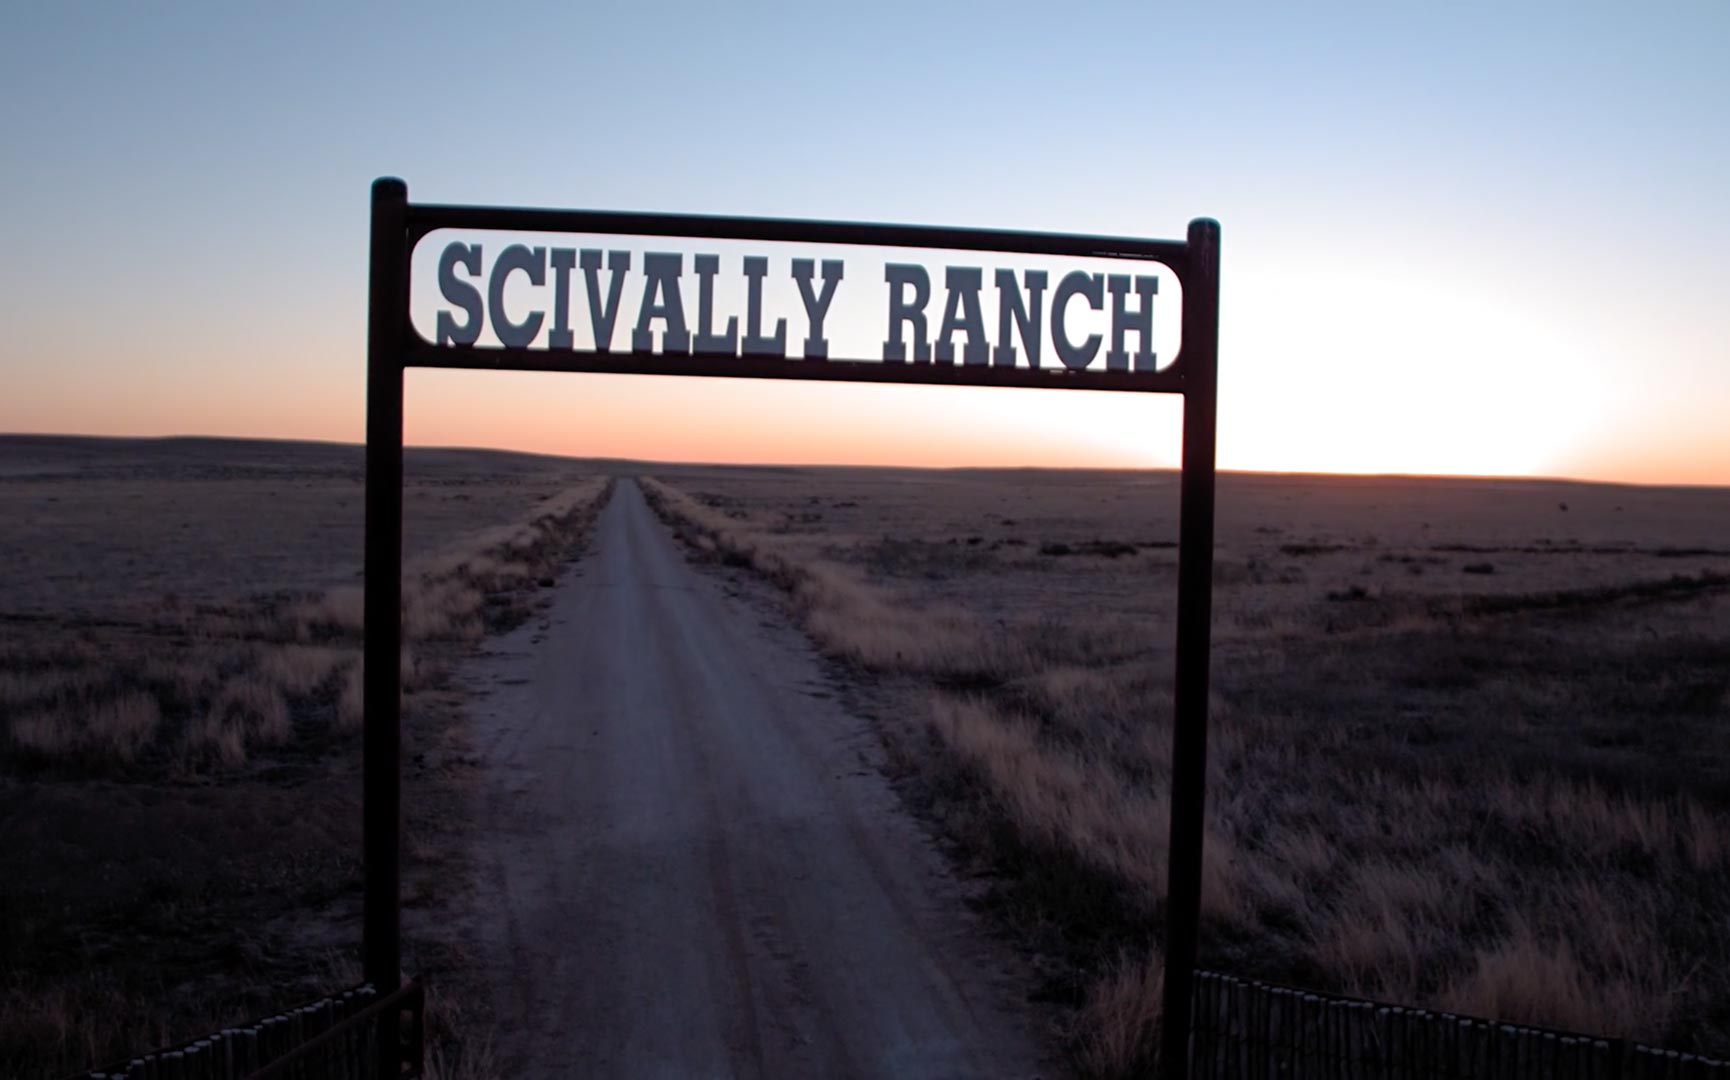 Straight road leading into the distance marked by Scivally Ranch sign over it.